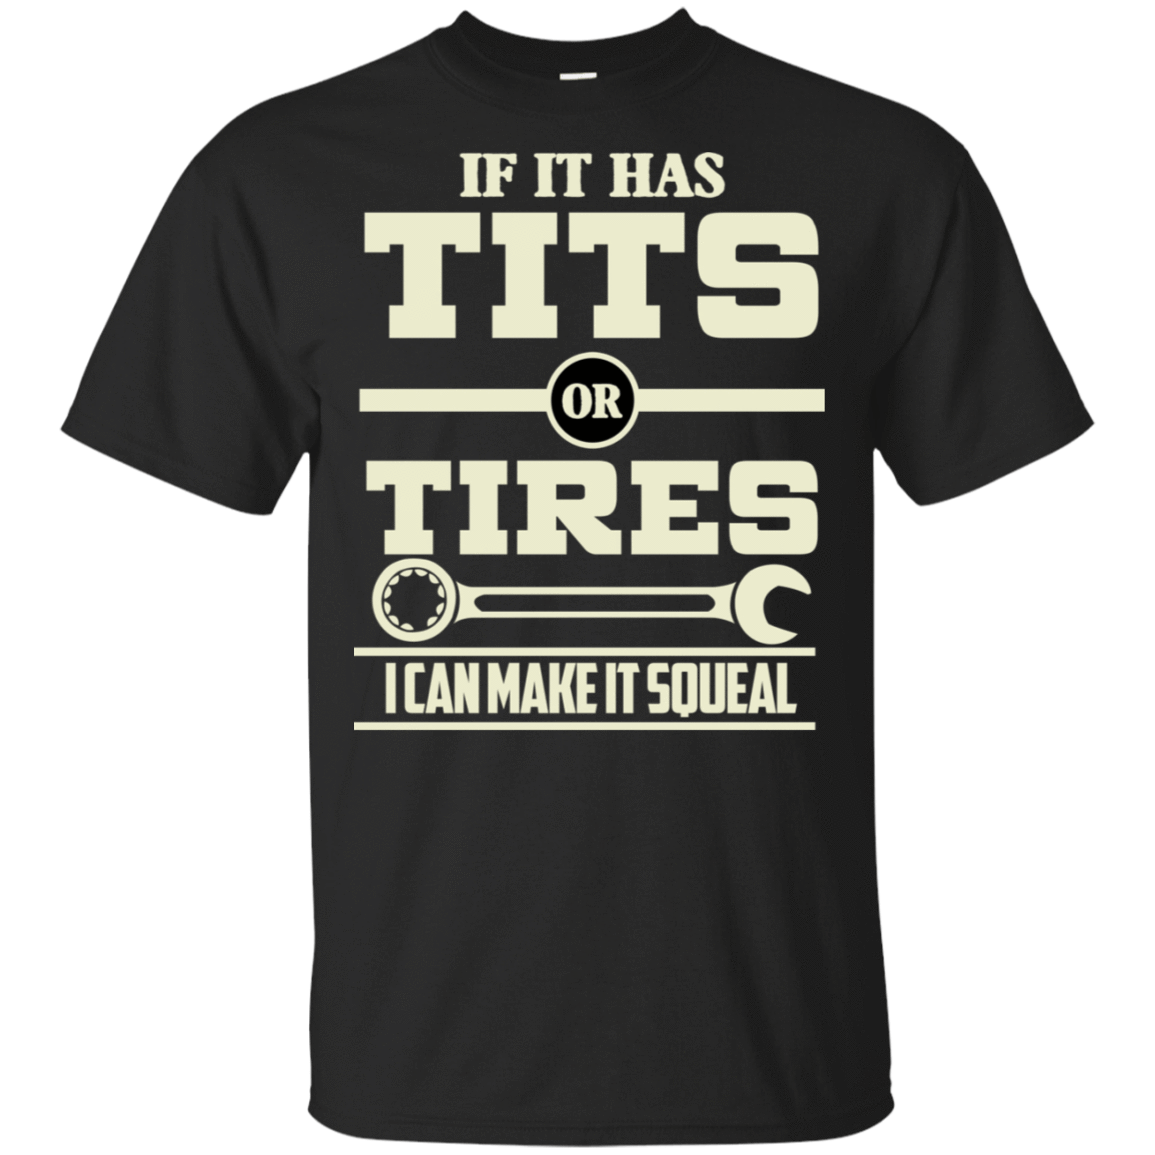 If It Has Tits Or Tires I Can Make It Squeal 22-113-73424618-252 - Tee Ript